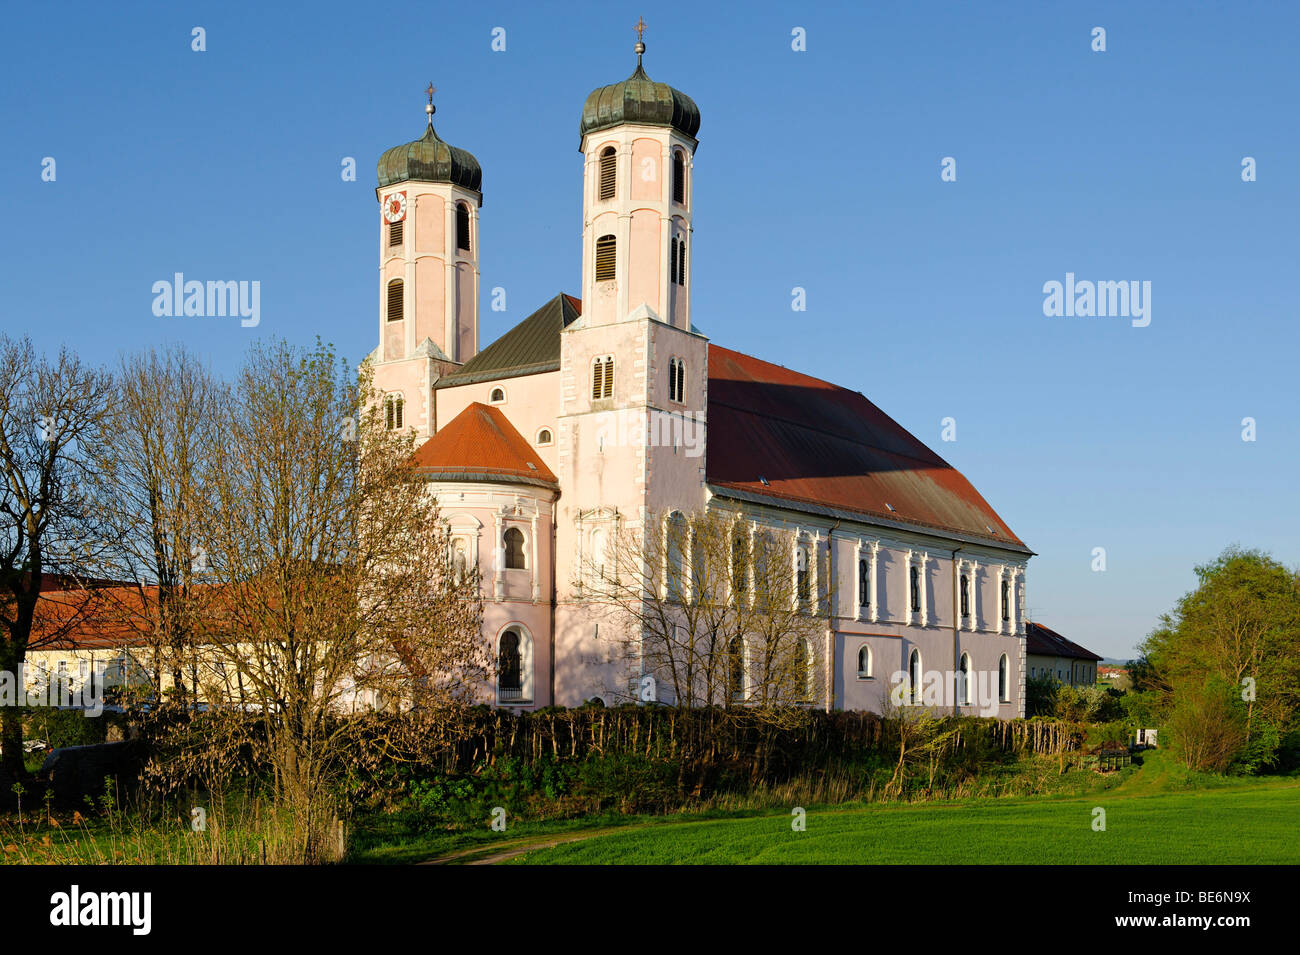 Former church of the Benedictine abbey Saint Peter, Oberaltaich, Lower Bavaria, Bavaria, Germany, Europe Stock Photo